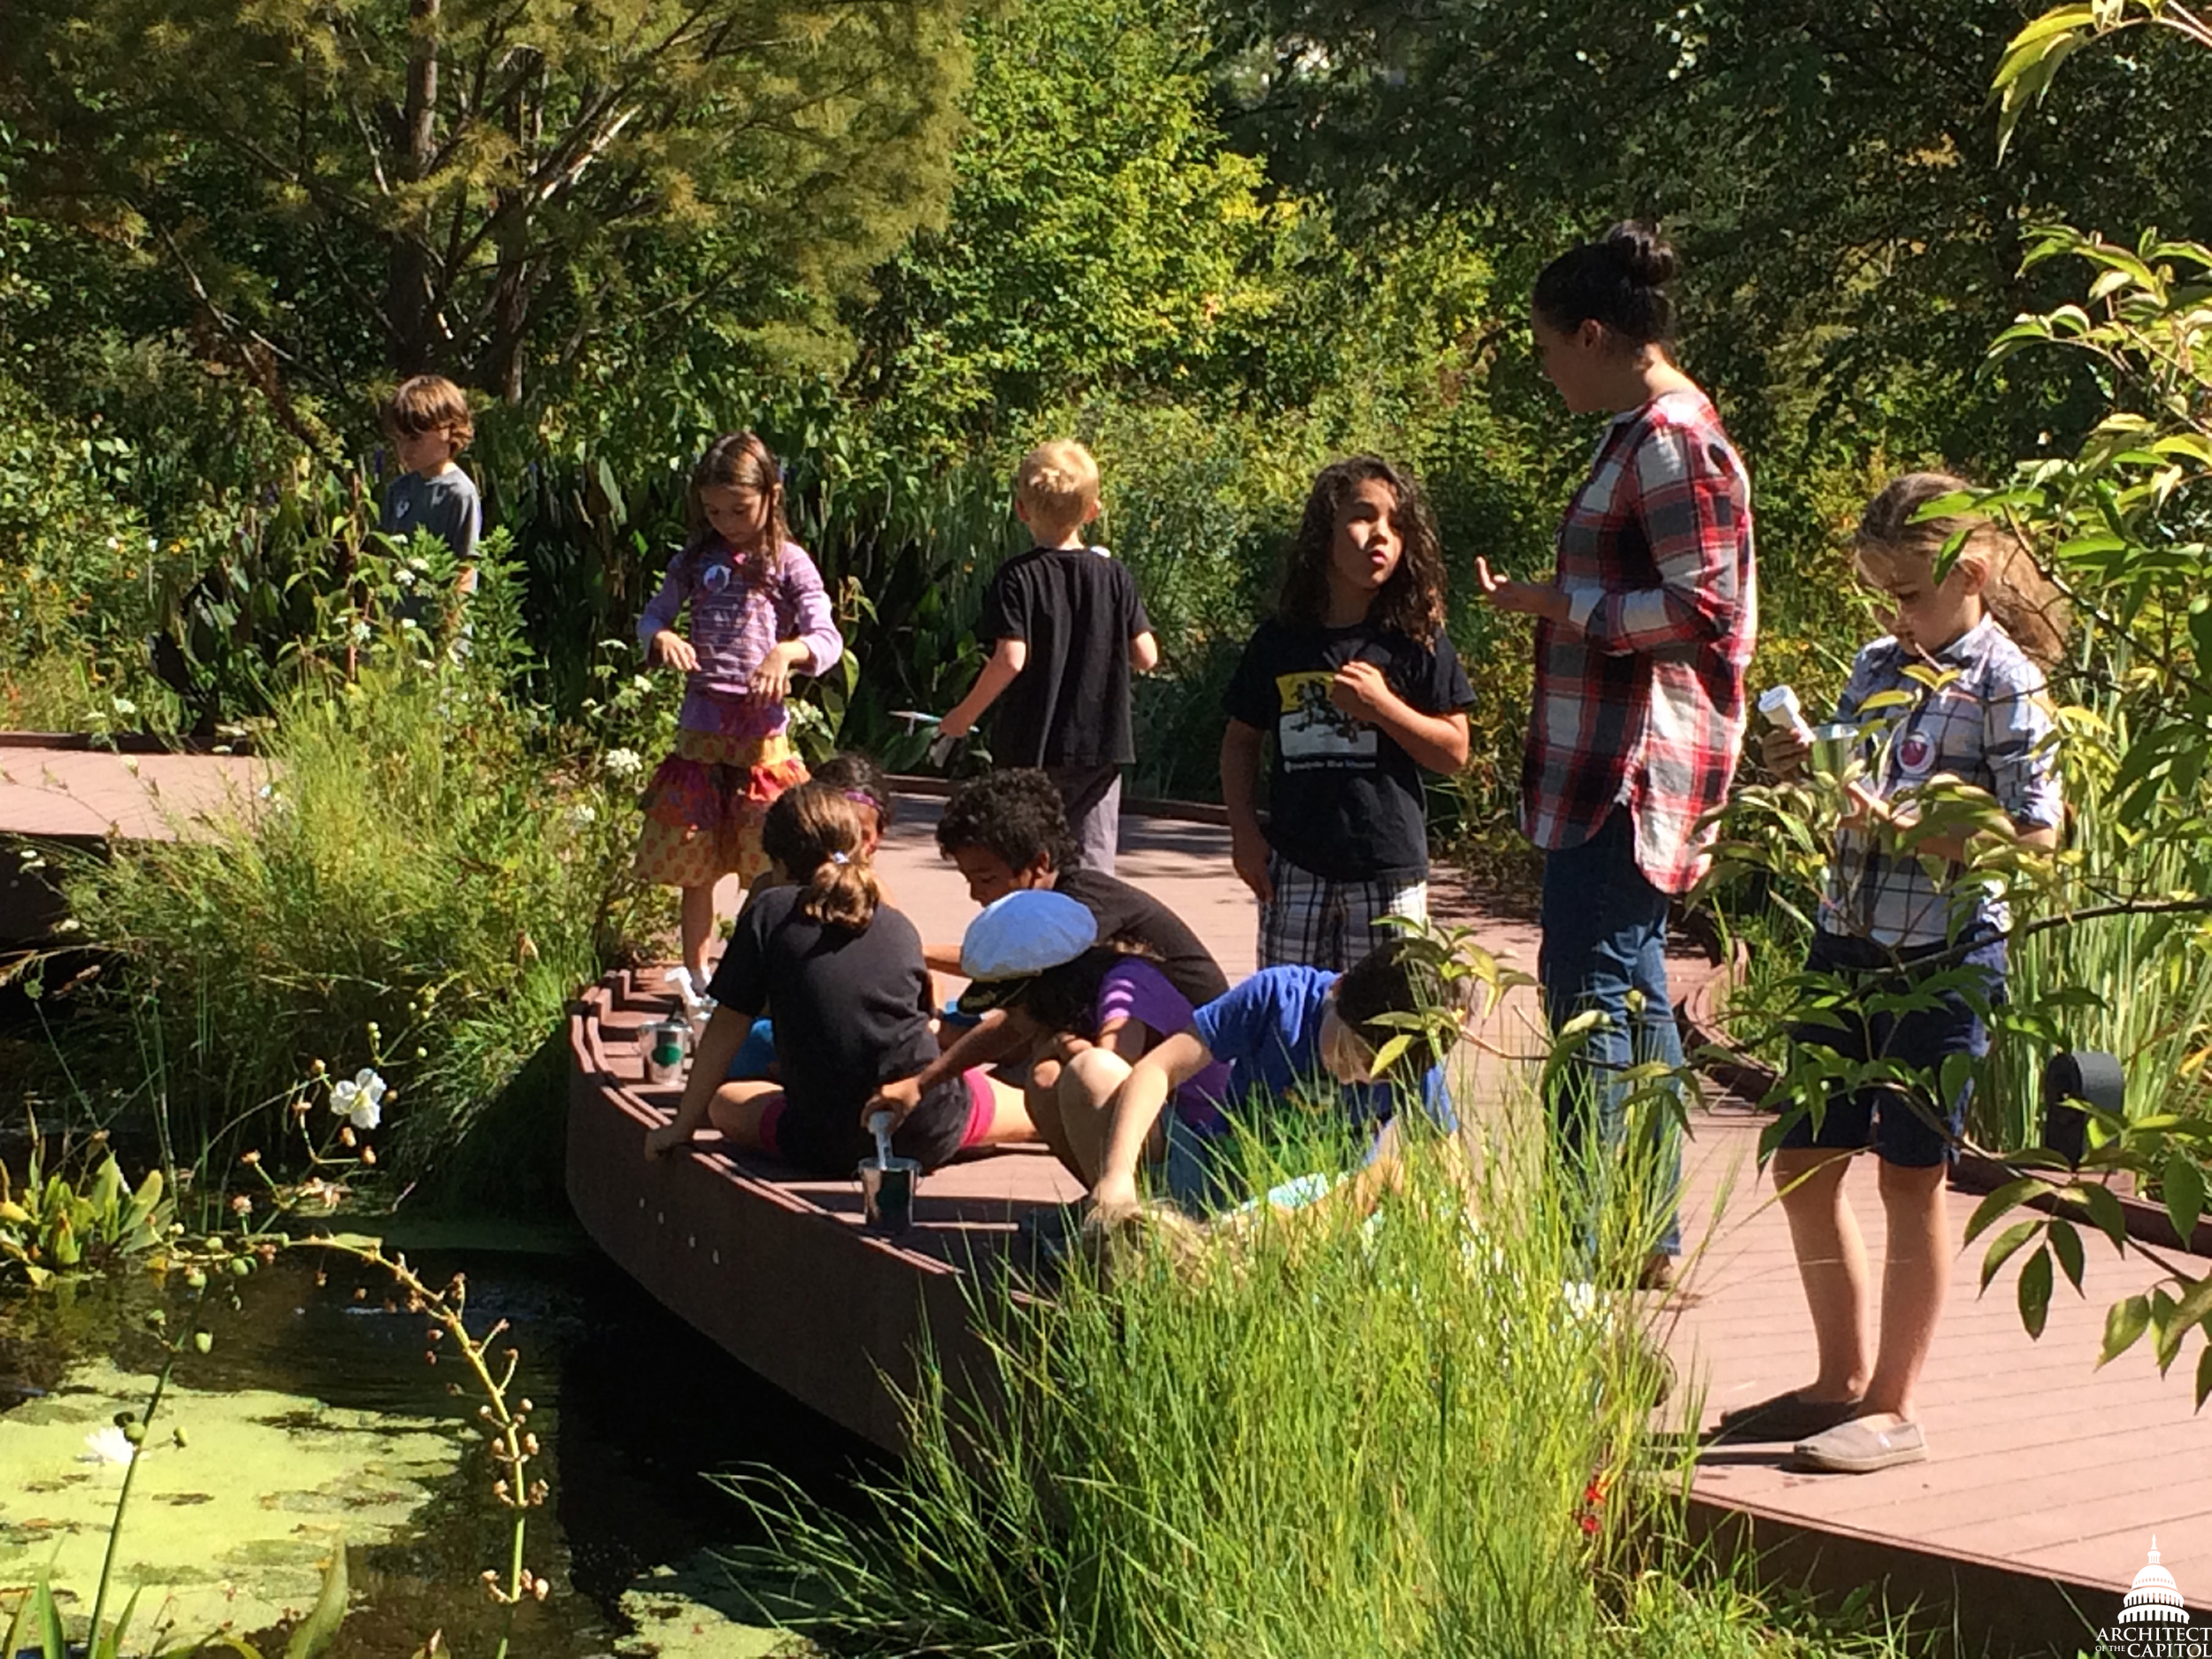 The National Garden serves as a living classroom for children, students and visitors of all ages.